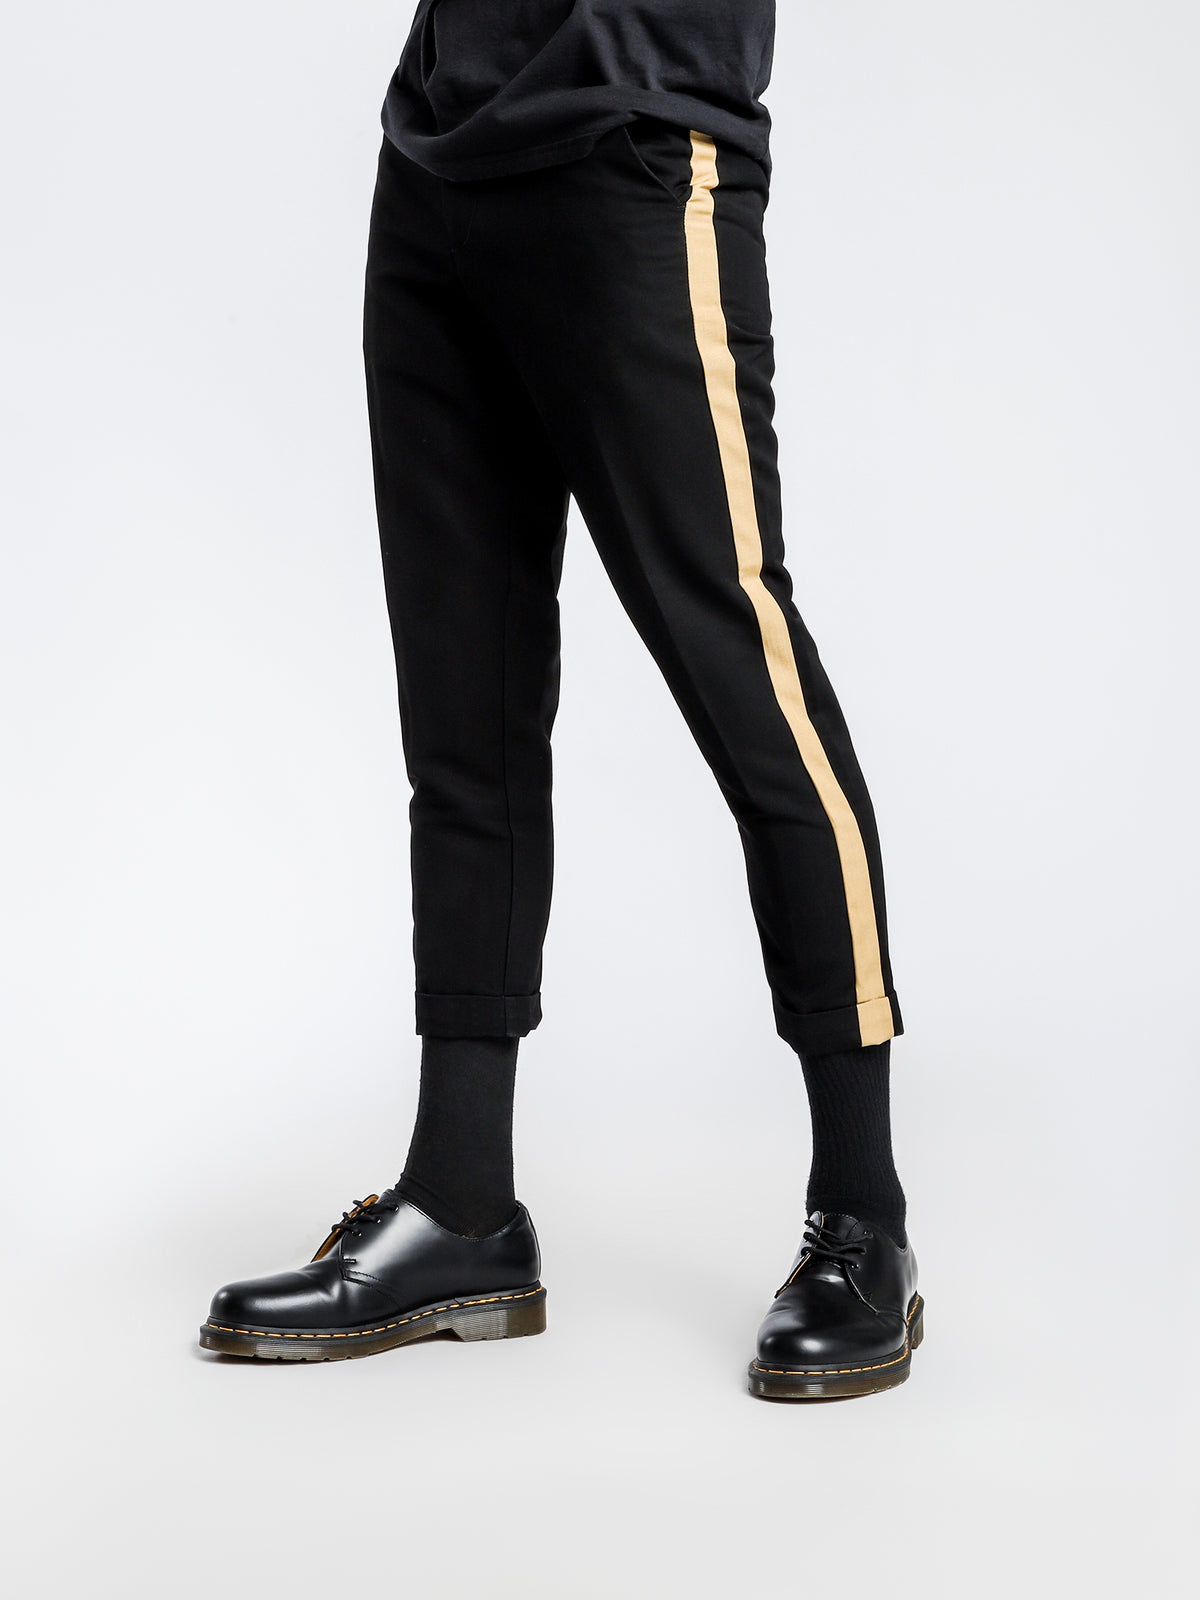 Shorditch Pants in Black